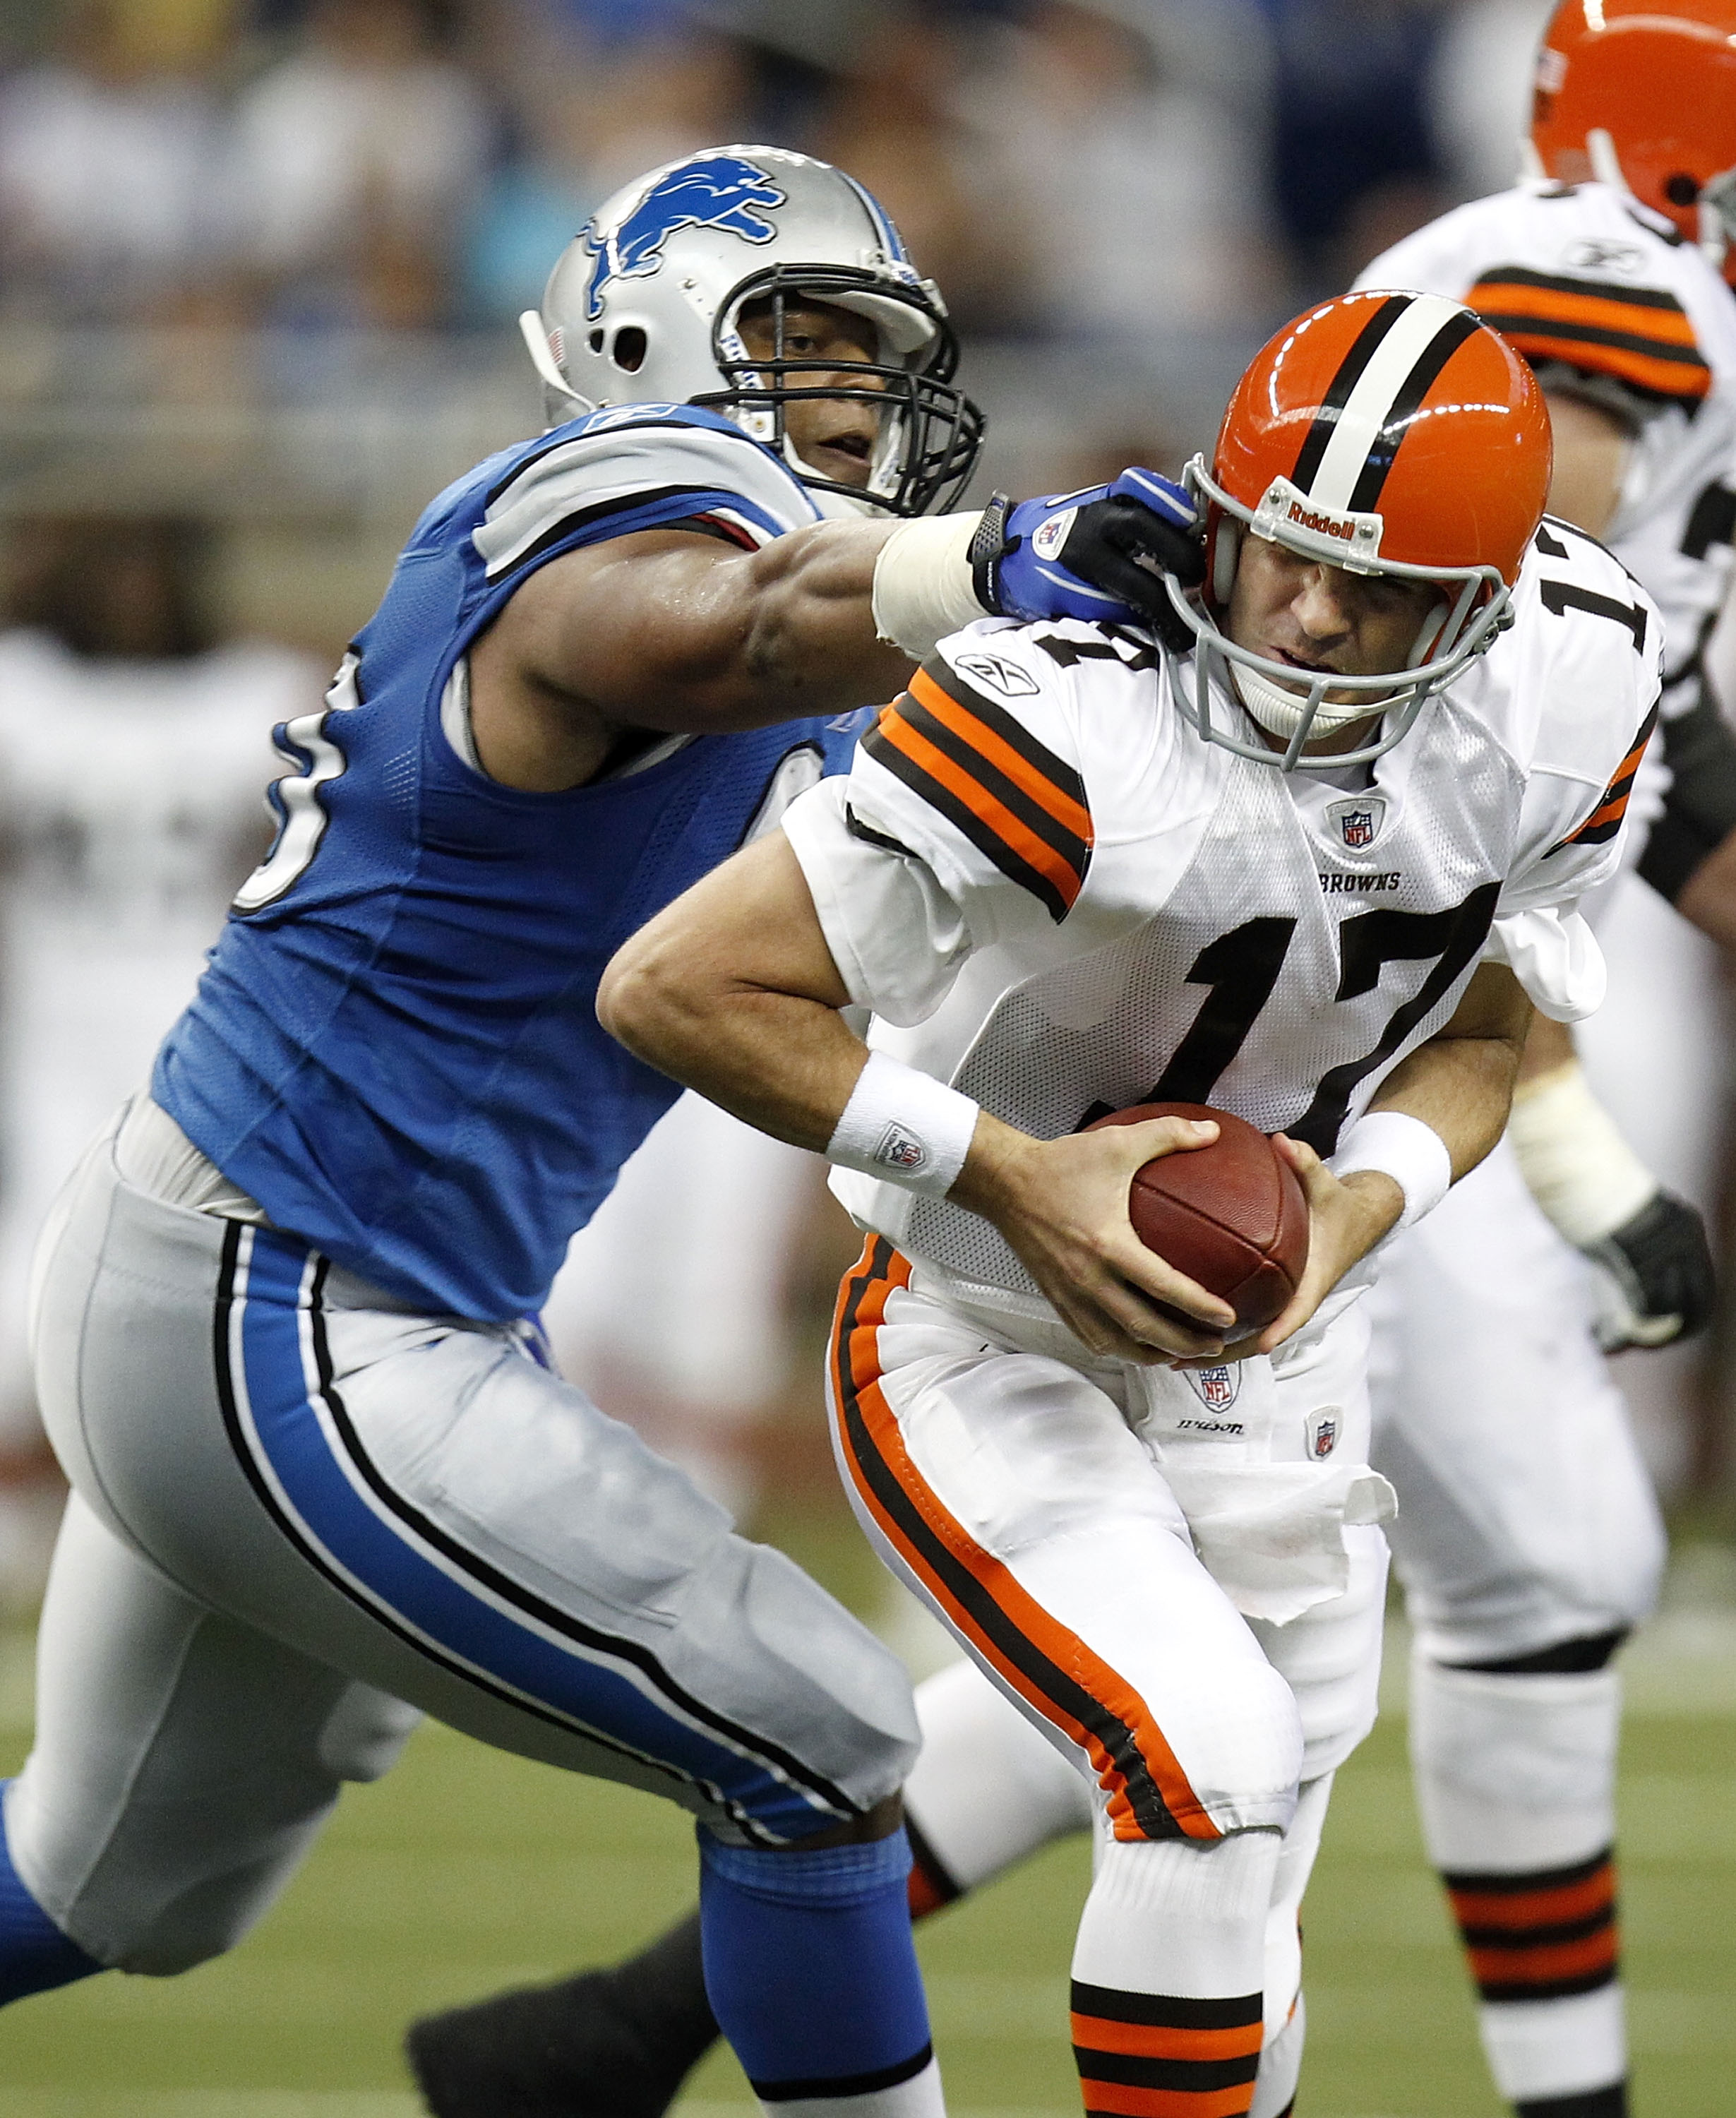 Delhomme's luck doesn't look much better with the Browns